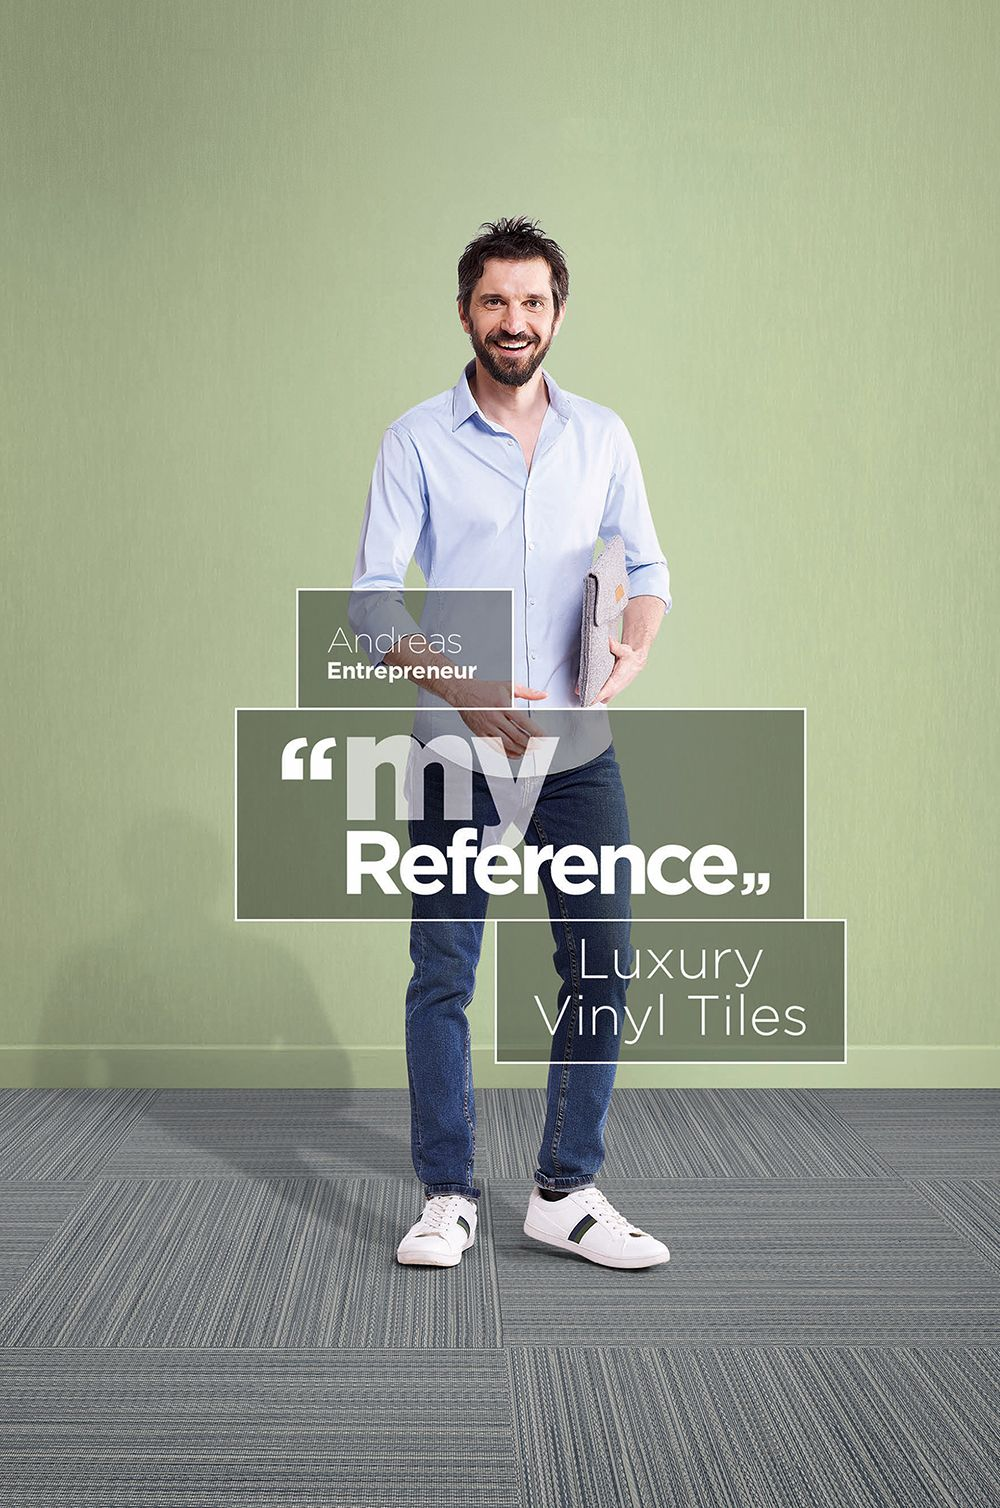 """Gerflor's Luxury Vinyl Tiles are easy to install, providing a cost-effective solution AND more time to focus on my work""  This is Andreas' reference, what's yours? #MyReference"